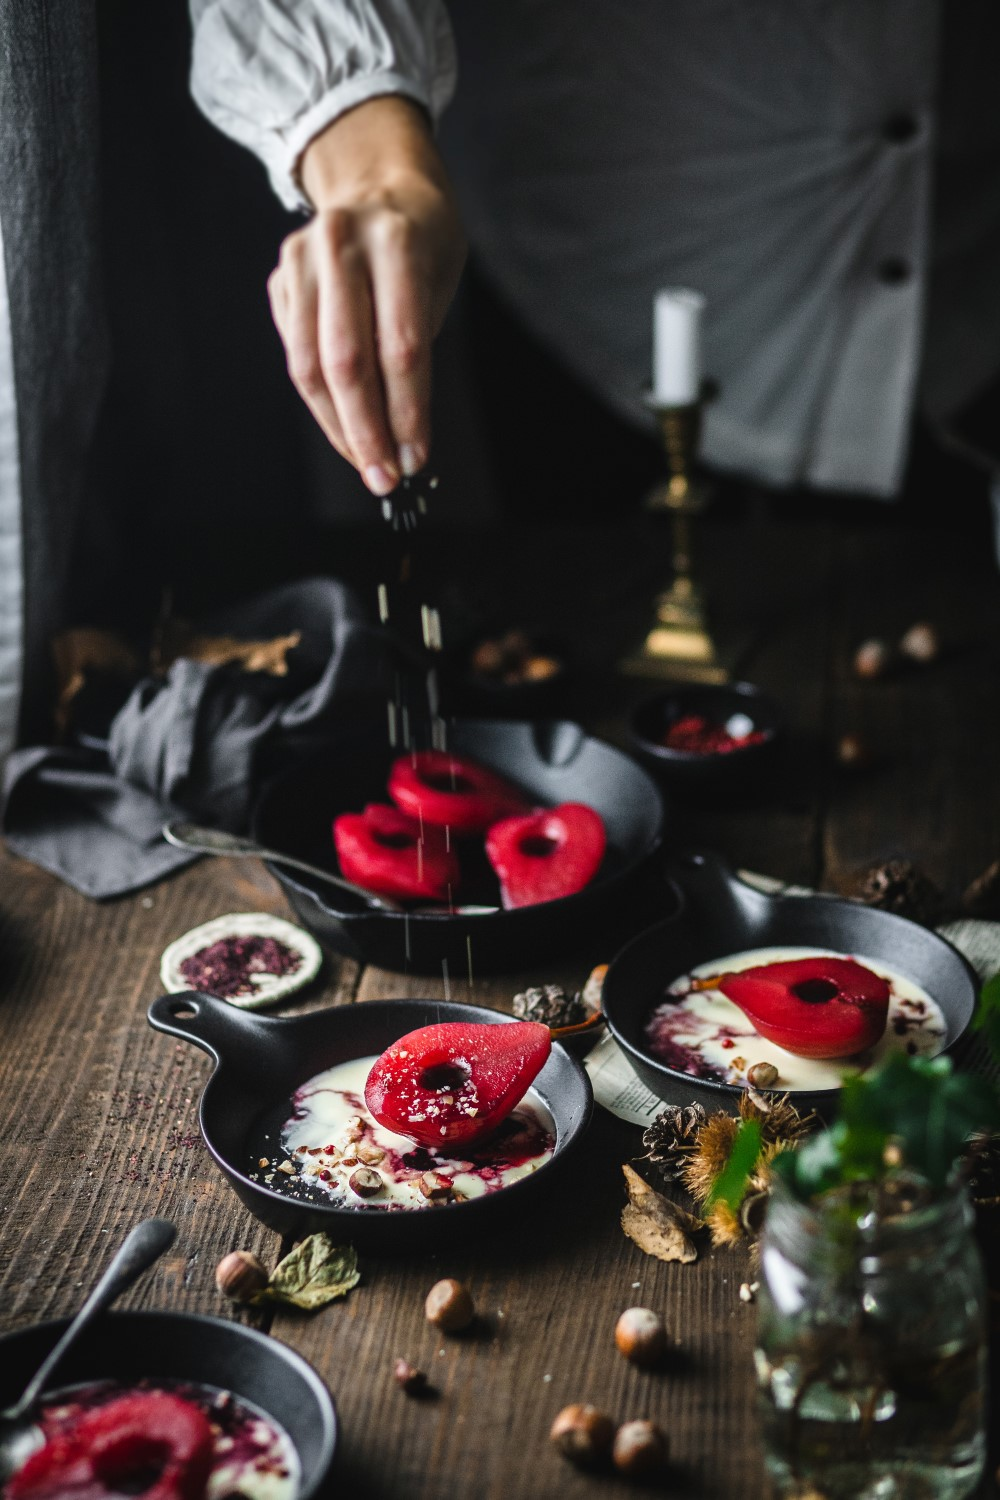 An easy but really fancy dessert like this hibiscus poached pears with vanilla and pink peppercorns is guaranteed to amaze at any party!